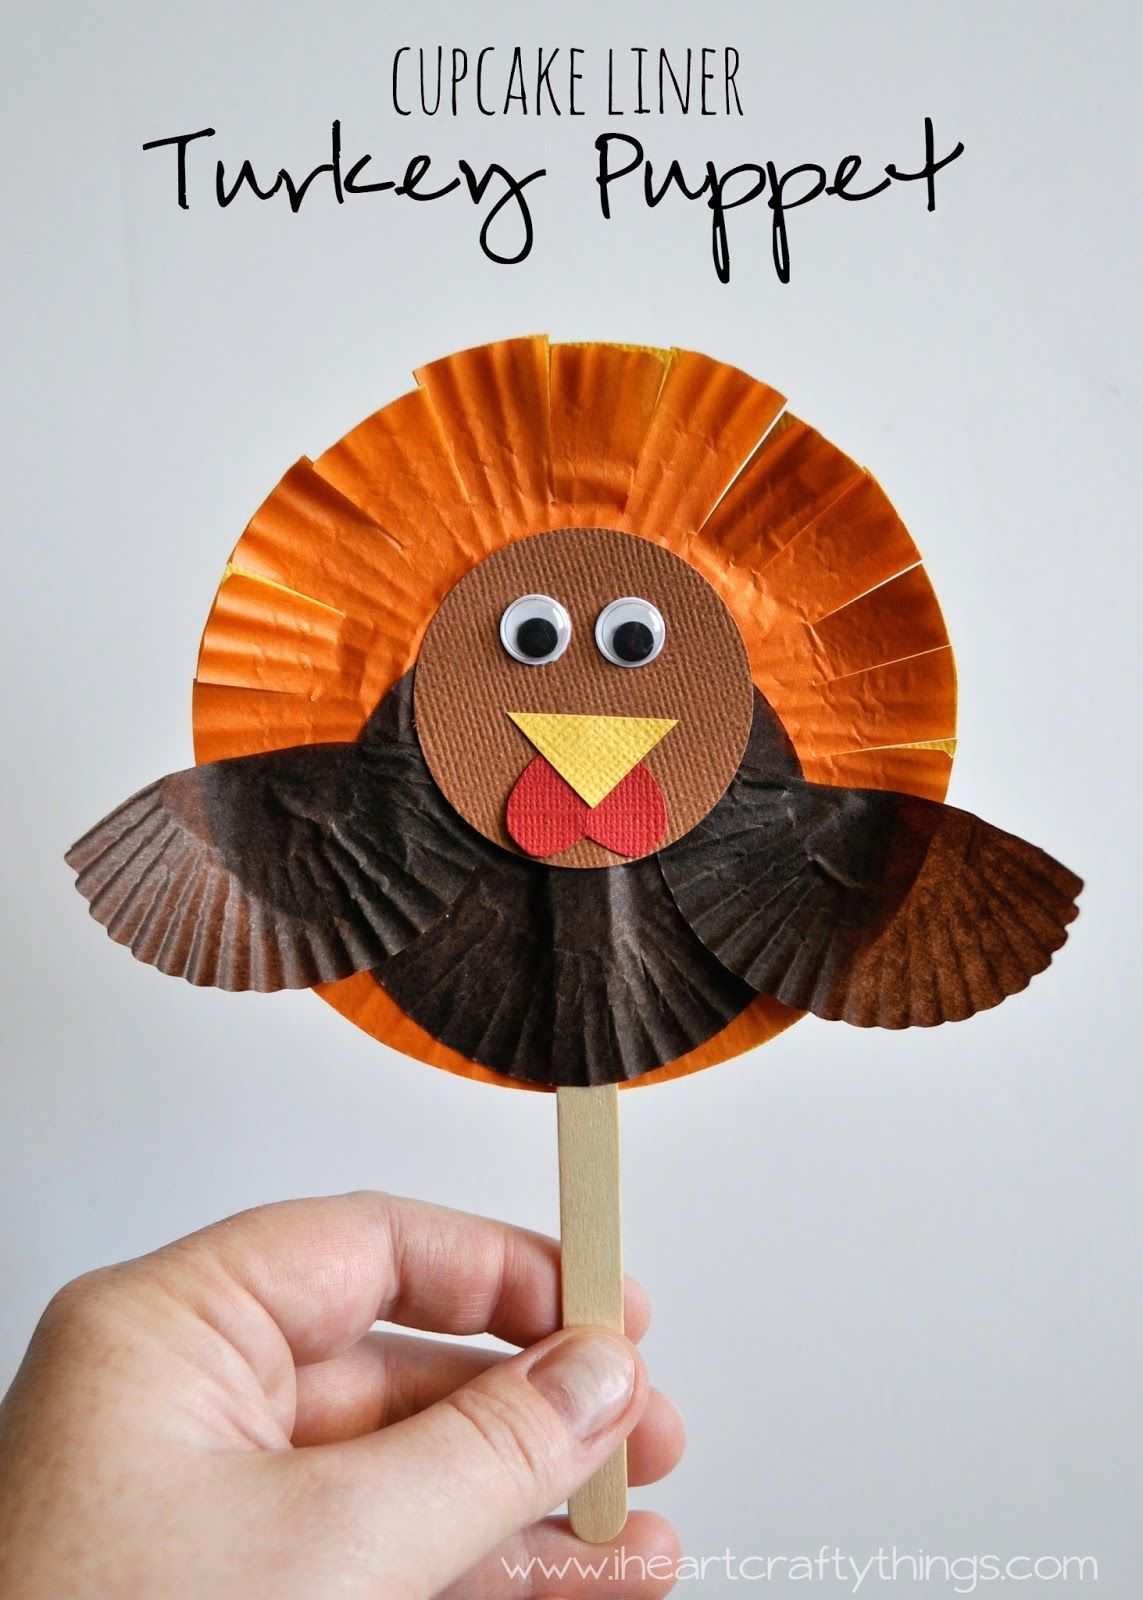 Cupcake Liner Turkey Puppet Pictures, Photos, and Images